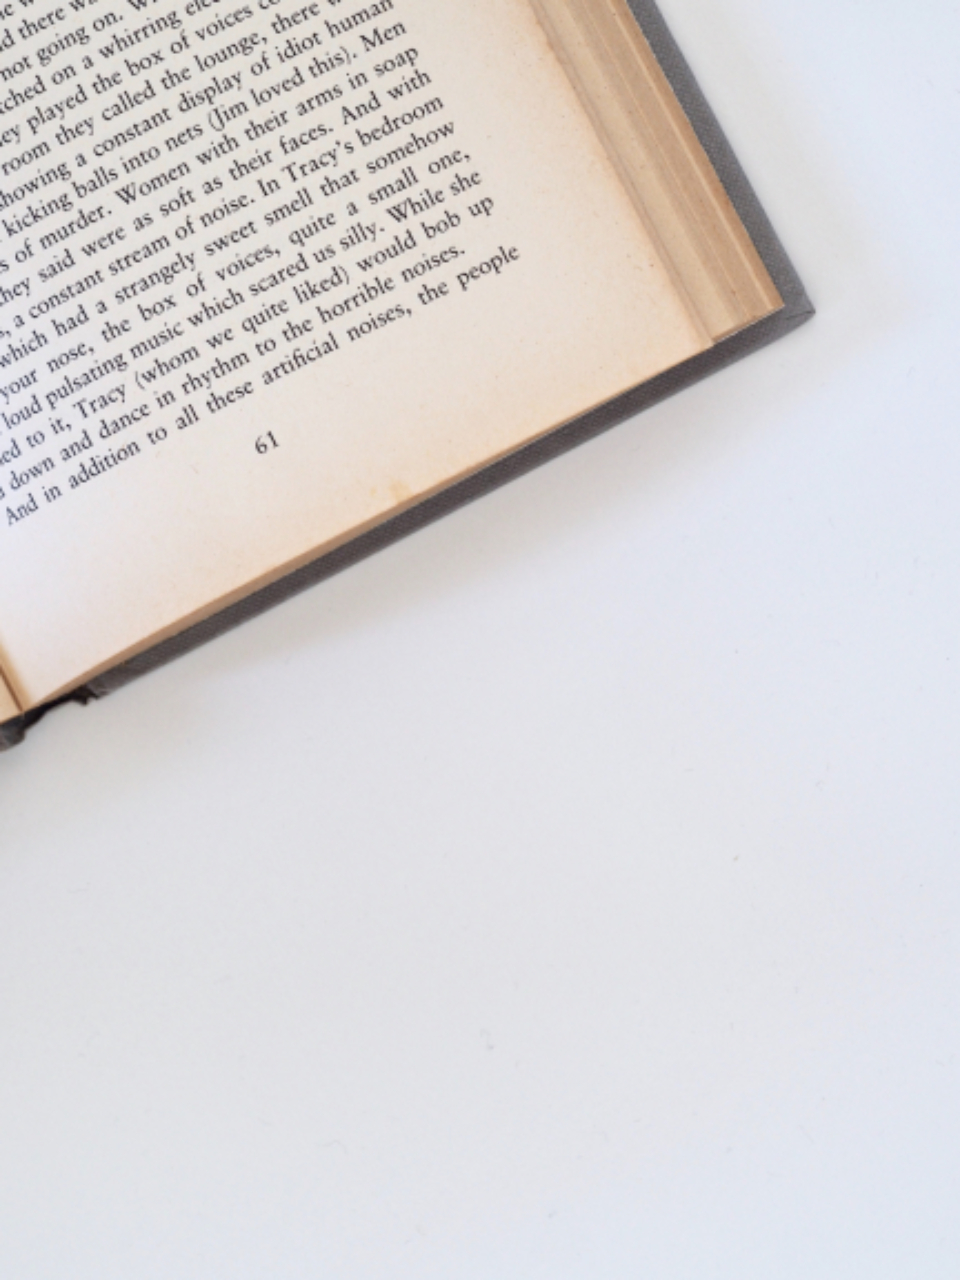 old book open words type literature learn white minimal background